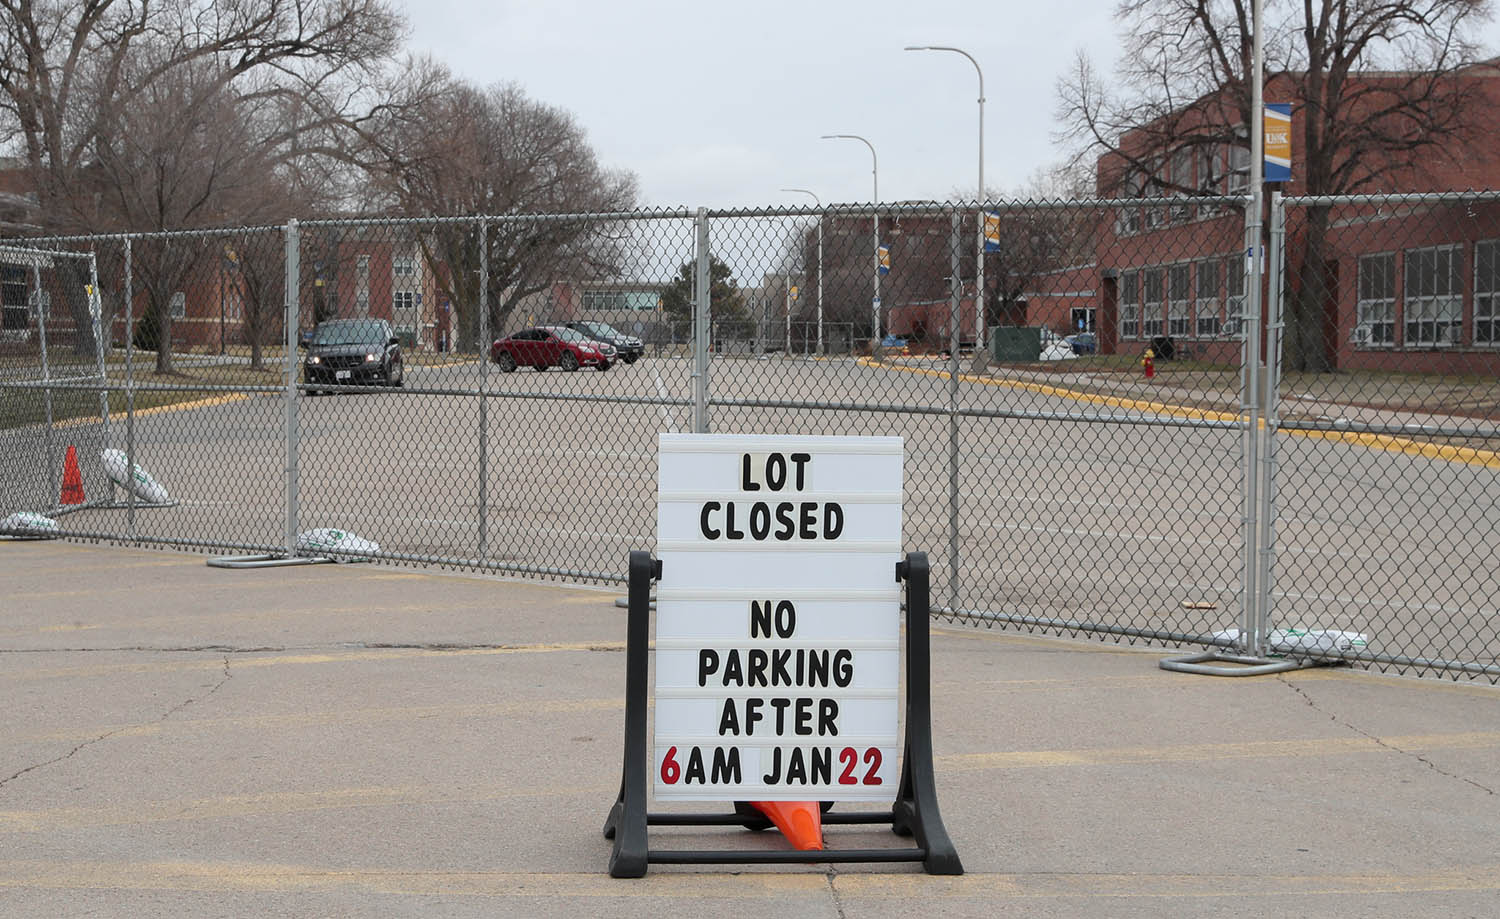 Lot 32 between Otto Olsen and Randall Hall is closed, effective immediately.